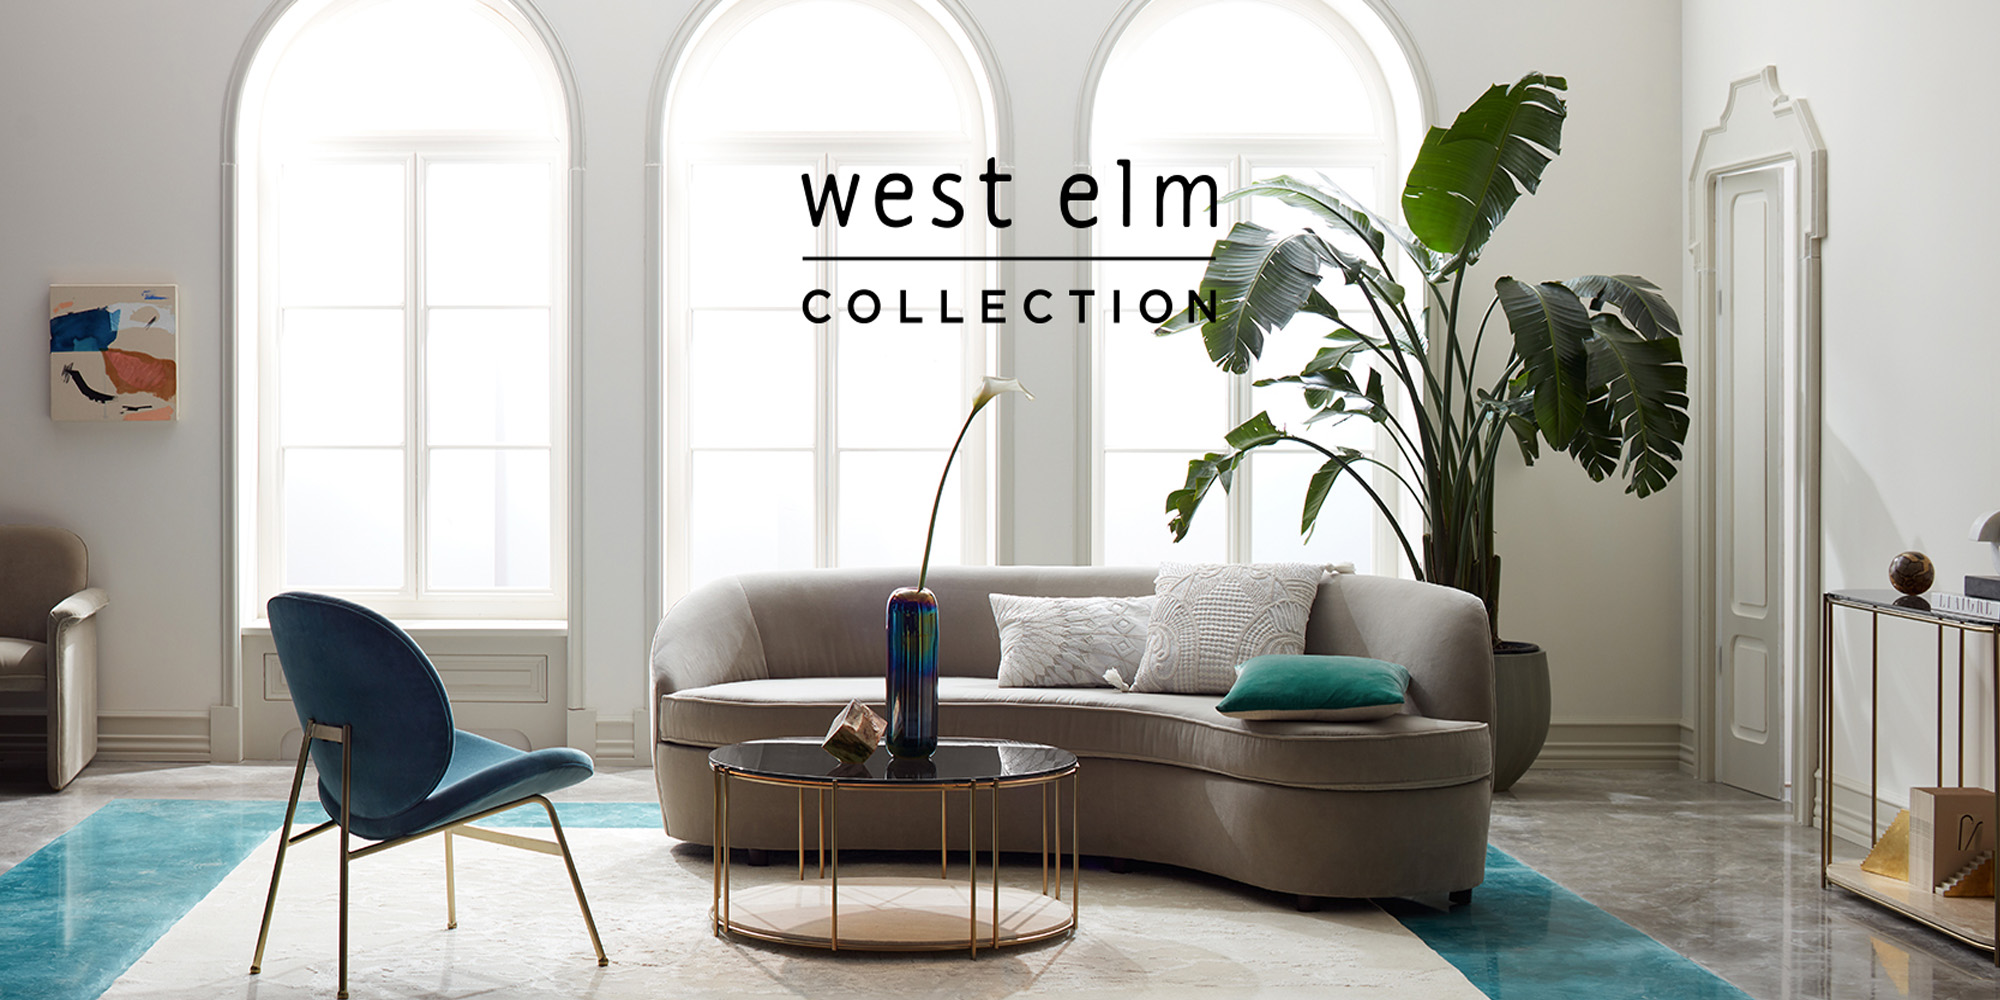 West Elm Takes Up To 30% Off Furniture + Up To 75% Off Clearance